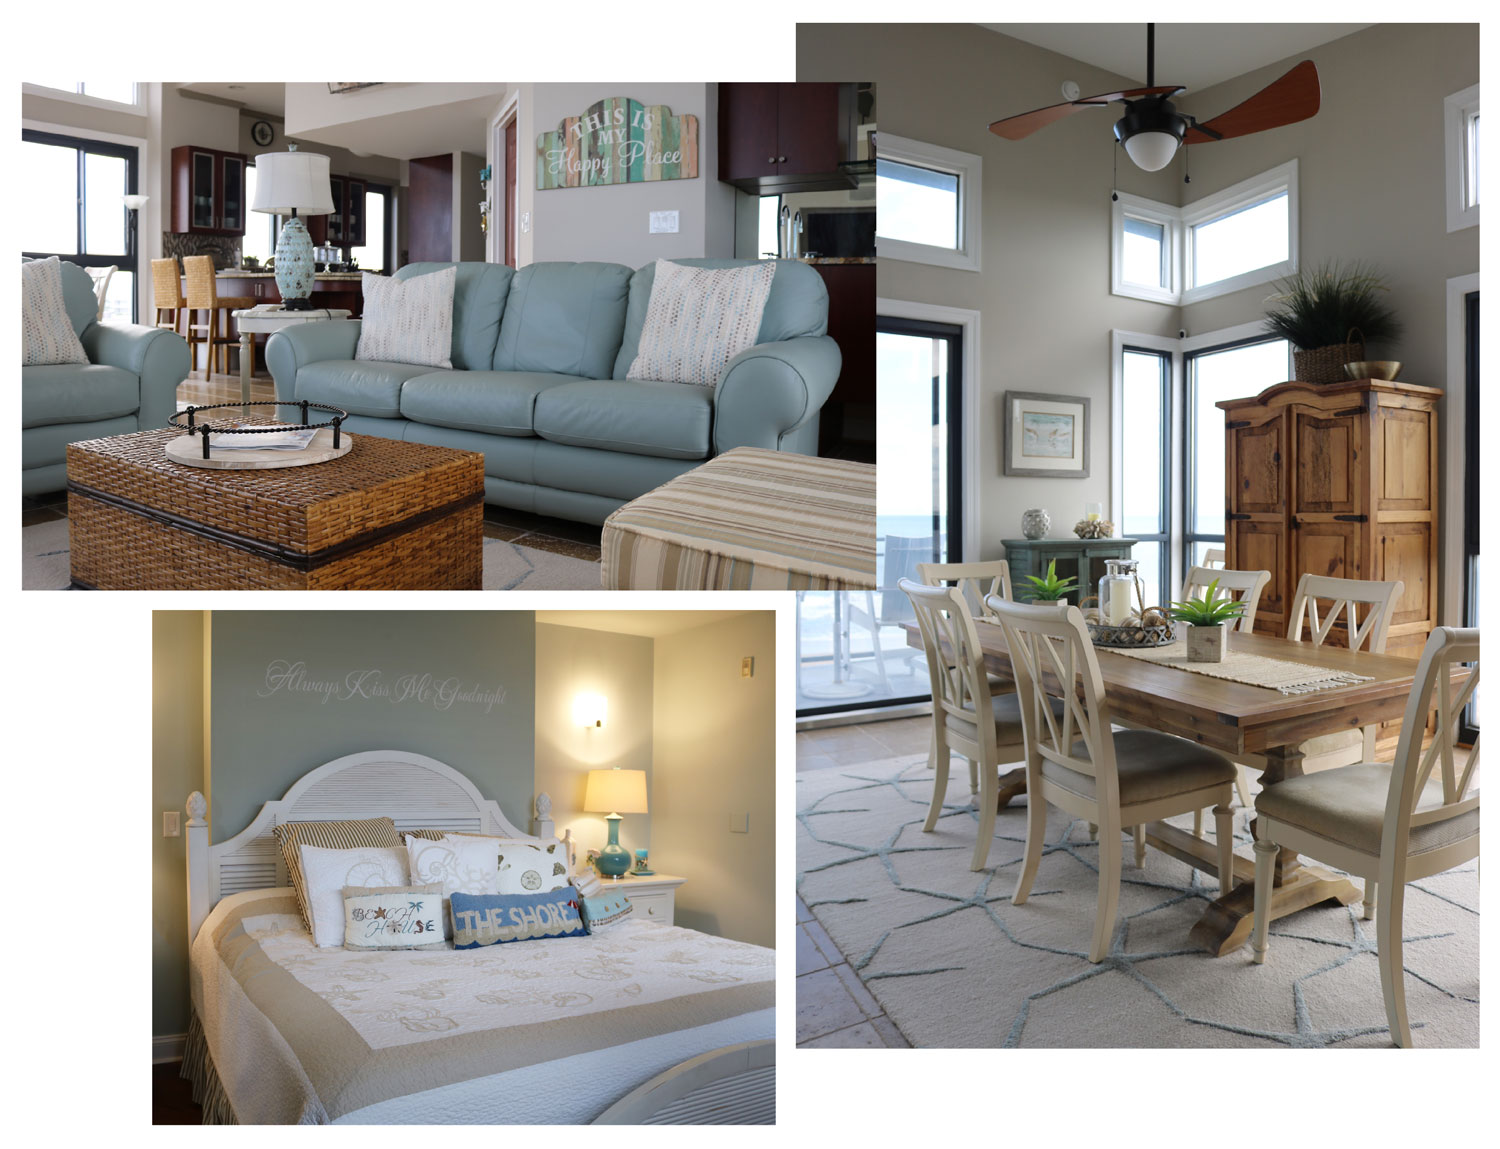 Cocco Home Images